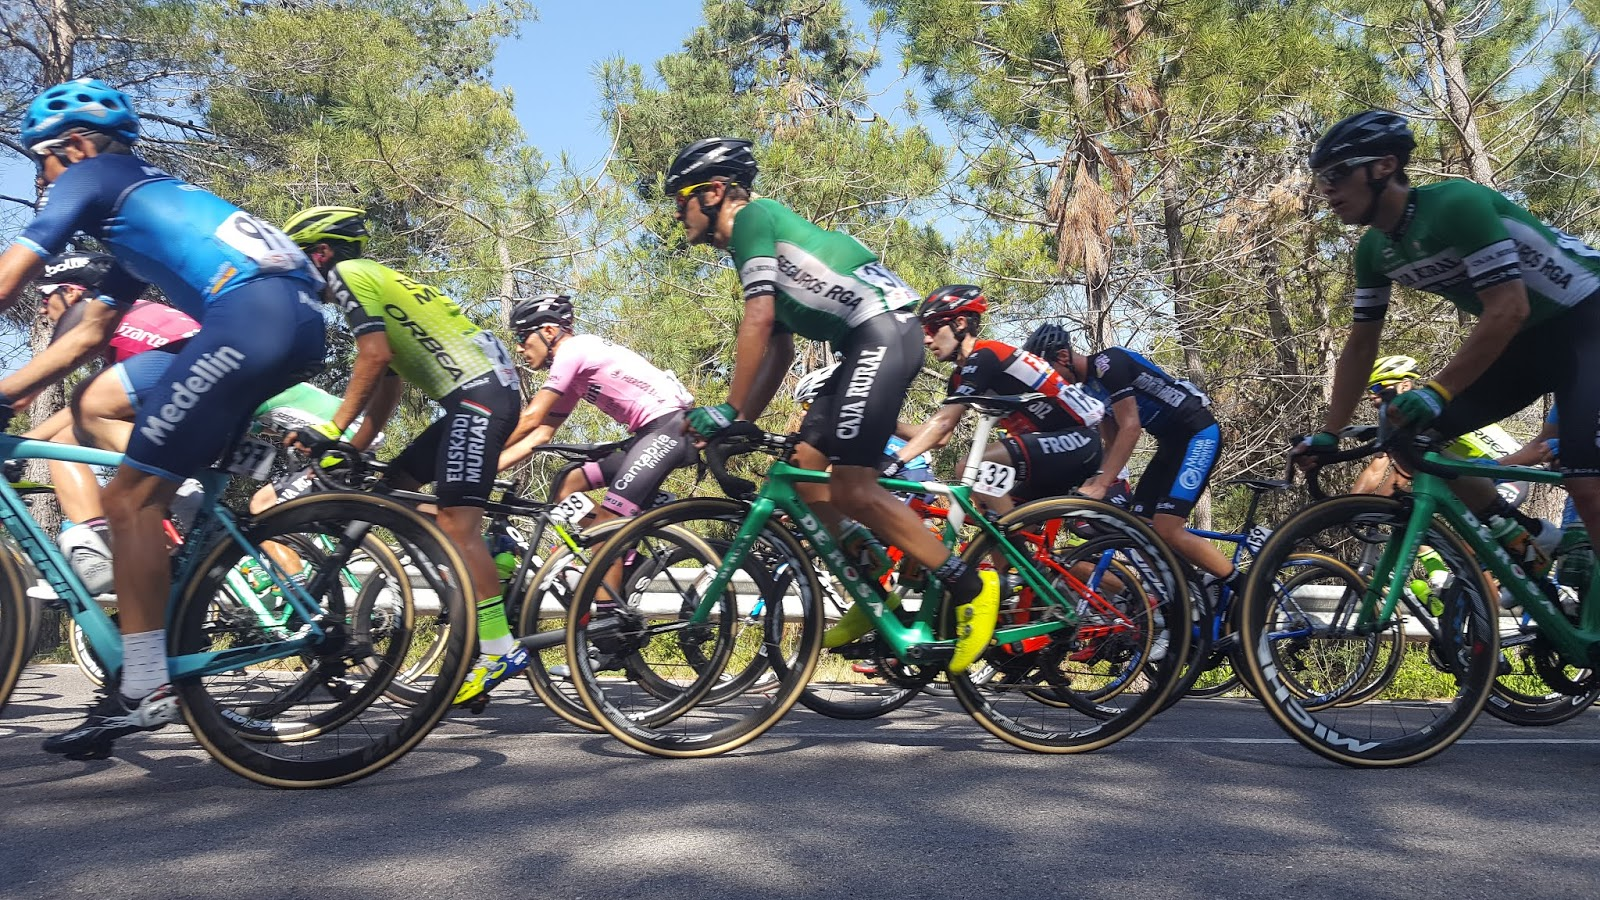 Peloton in the Mens Professional Road Race, 2018 Spanish Championships, Castellón, Spain